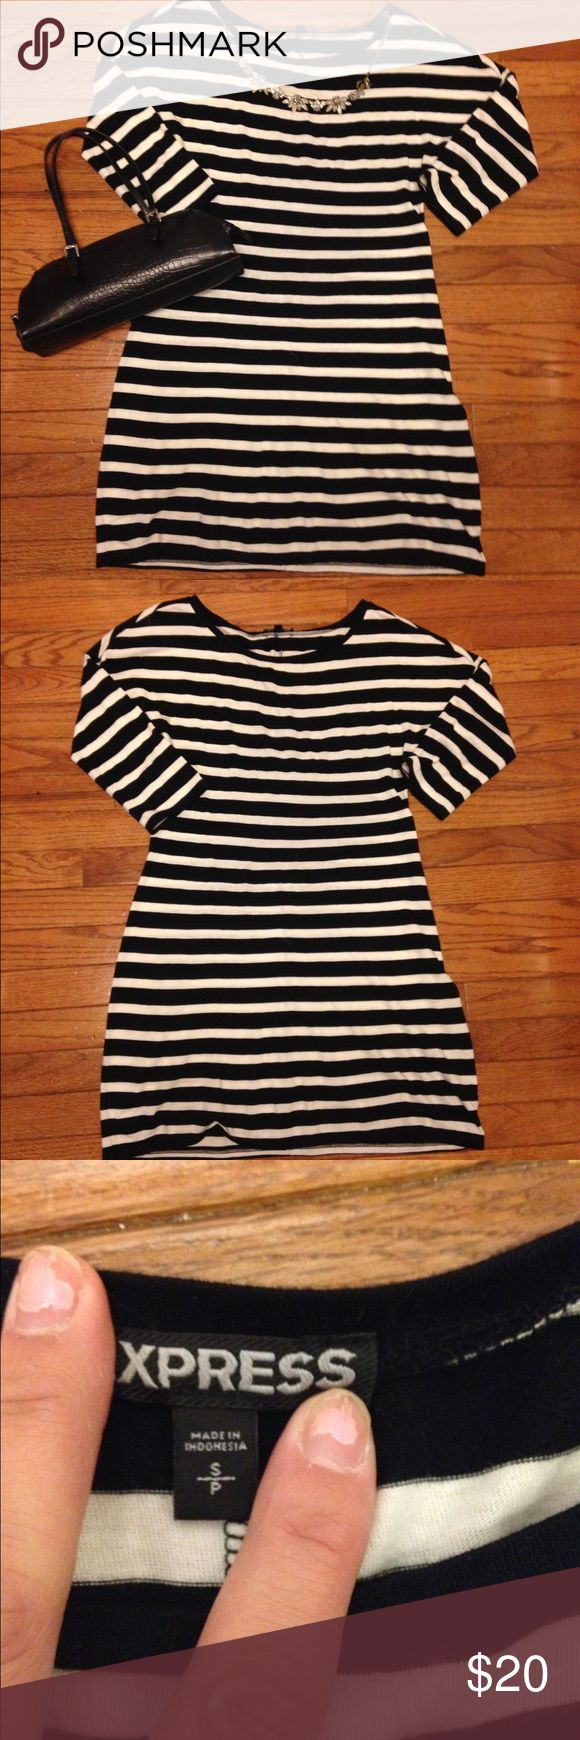 Express striped mini dress sz S Up for sale is a super cute striped mini dress from Express!! This dress has been tried on a few times but has never been worn out or washed. It is in new condition! Would look great with a jean jacket & ankle boots! Thanks for looking!! Express Dresses Mini